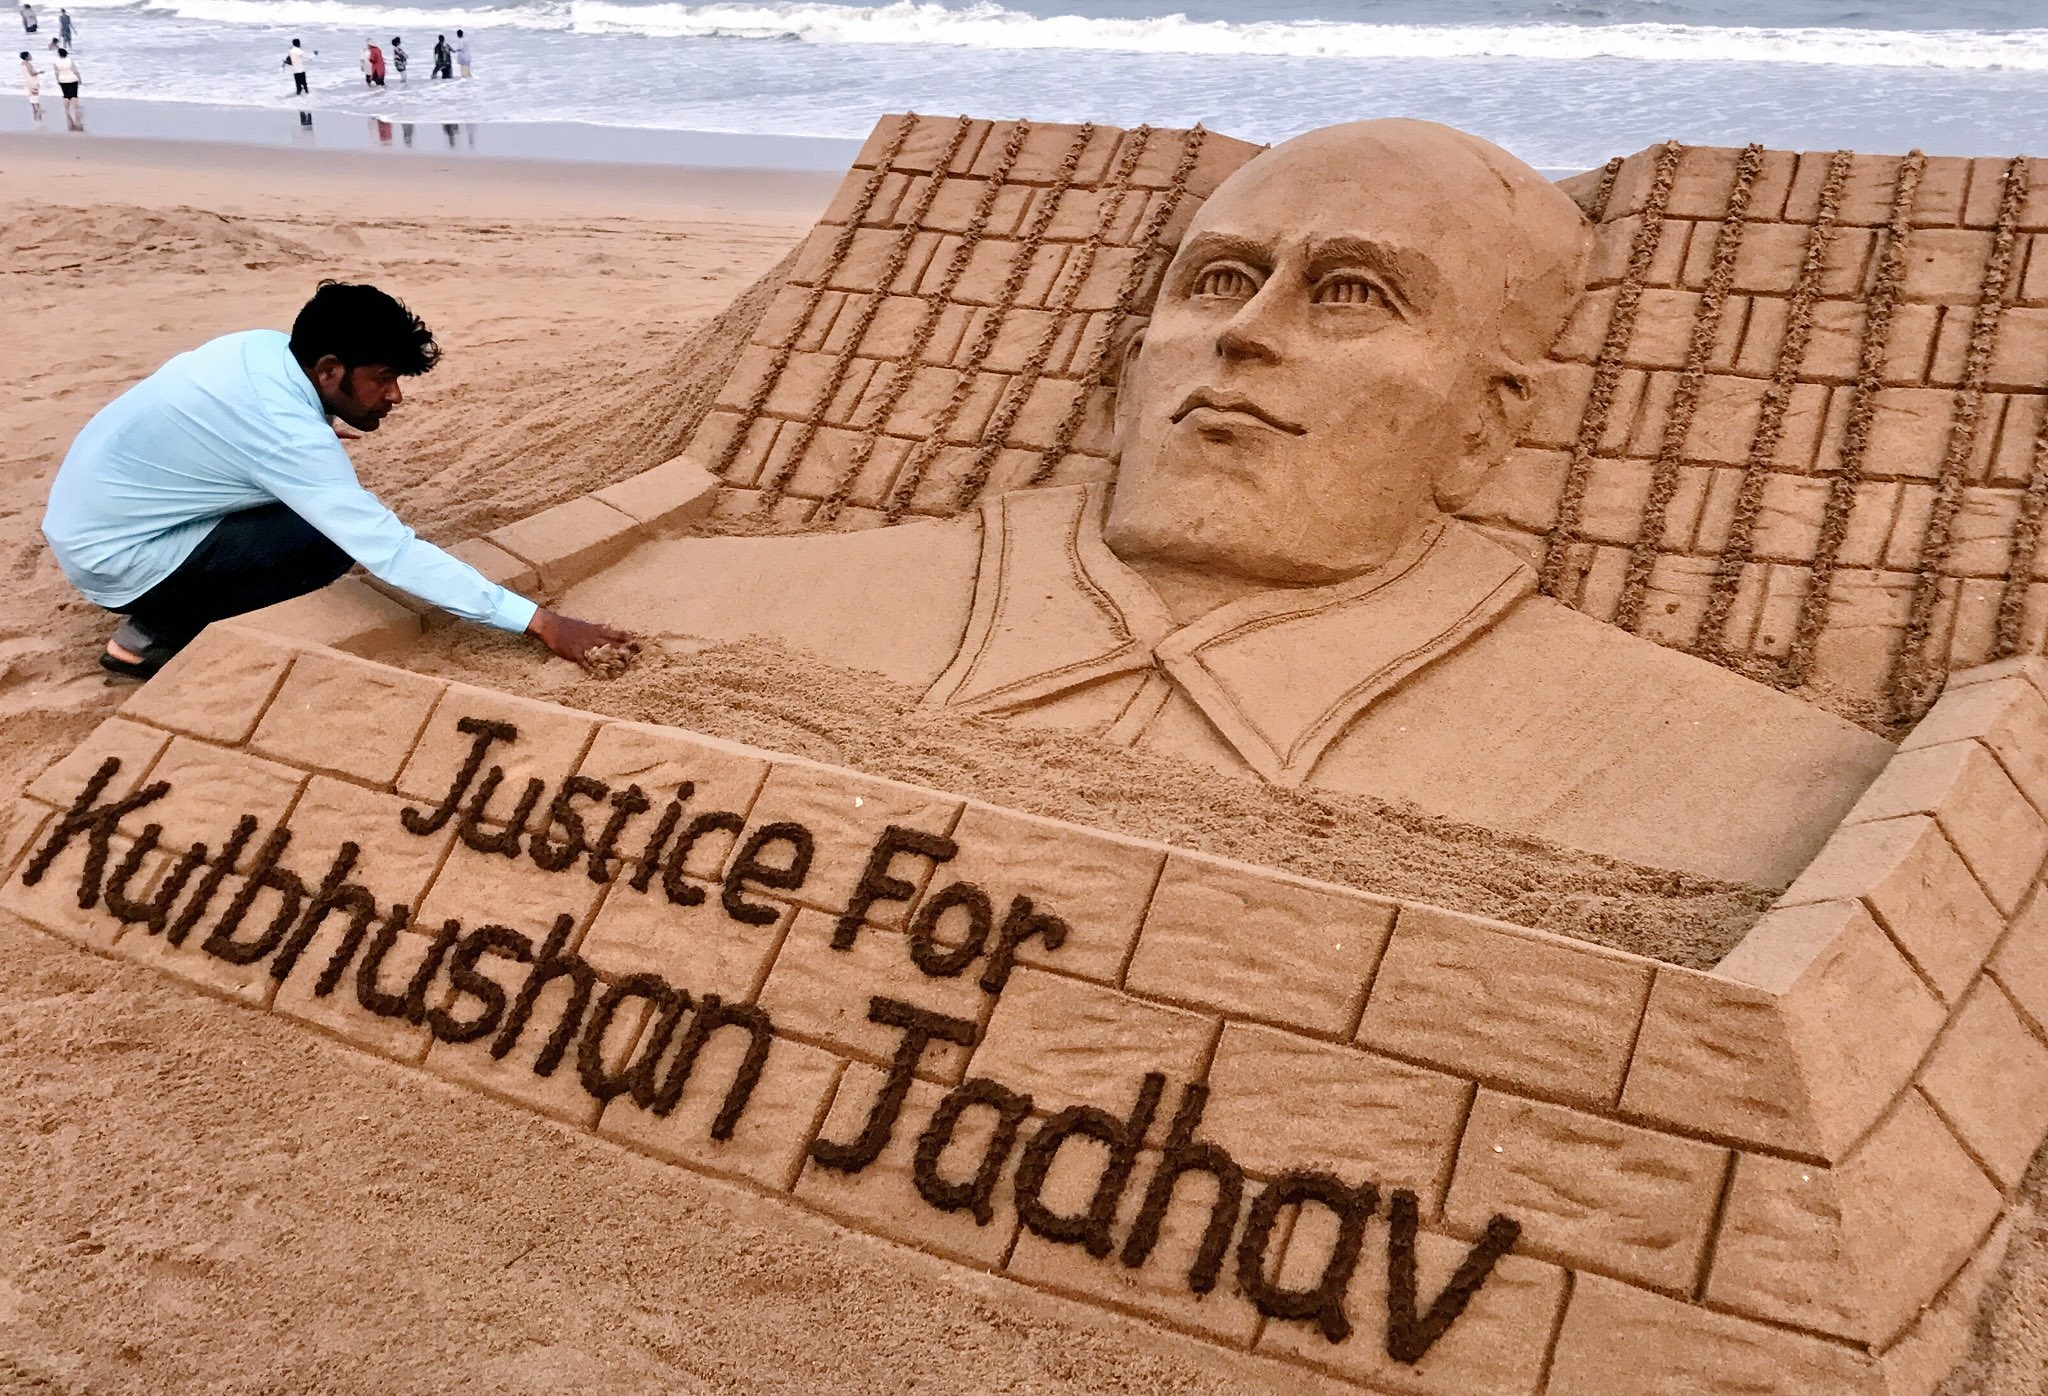 A sand sculpture in support of Kulbhushan Jadhav.